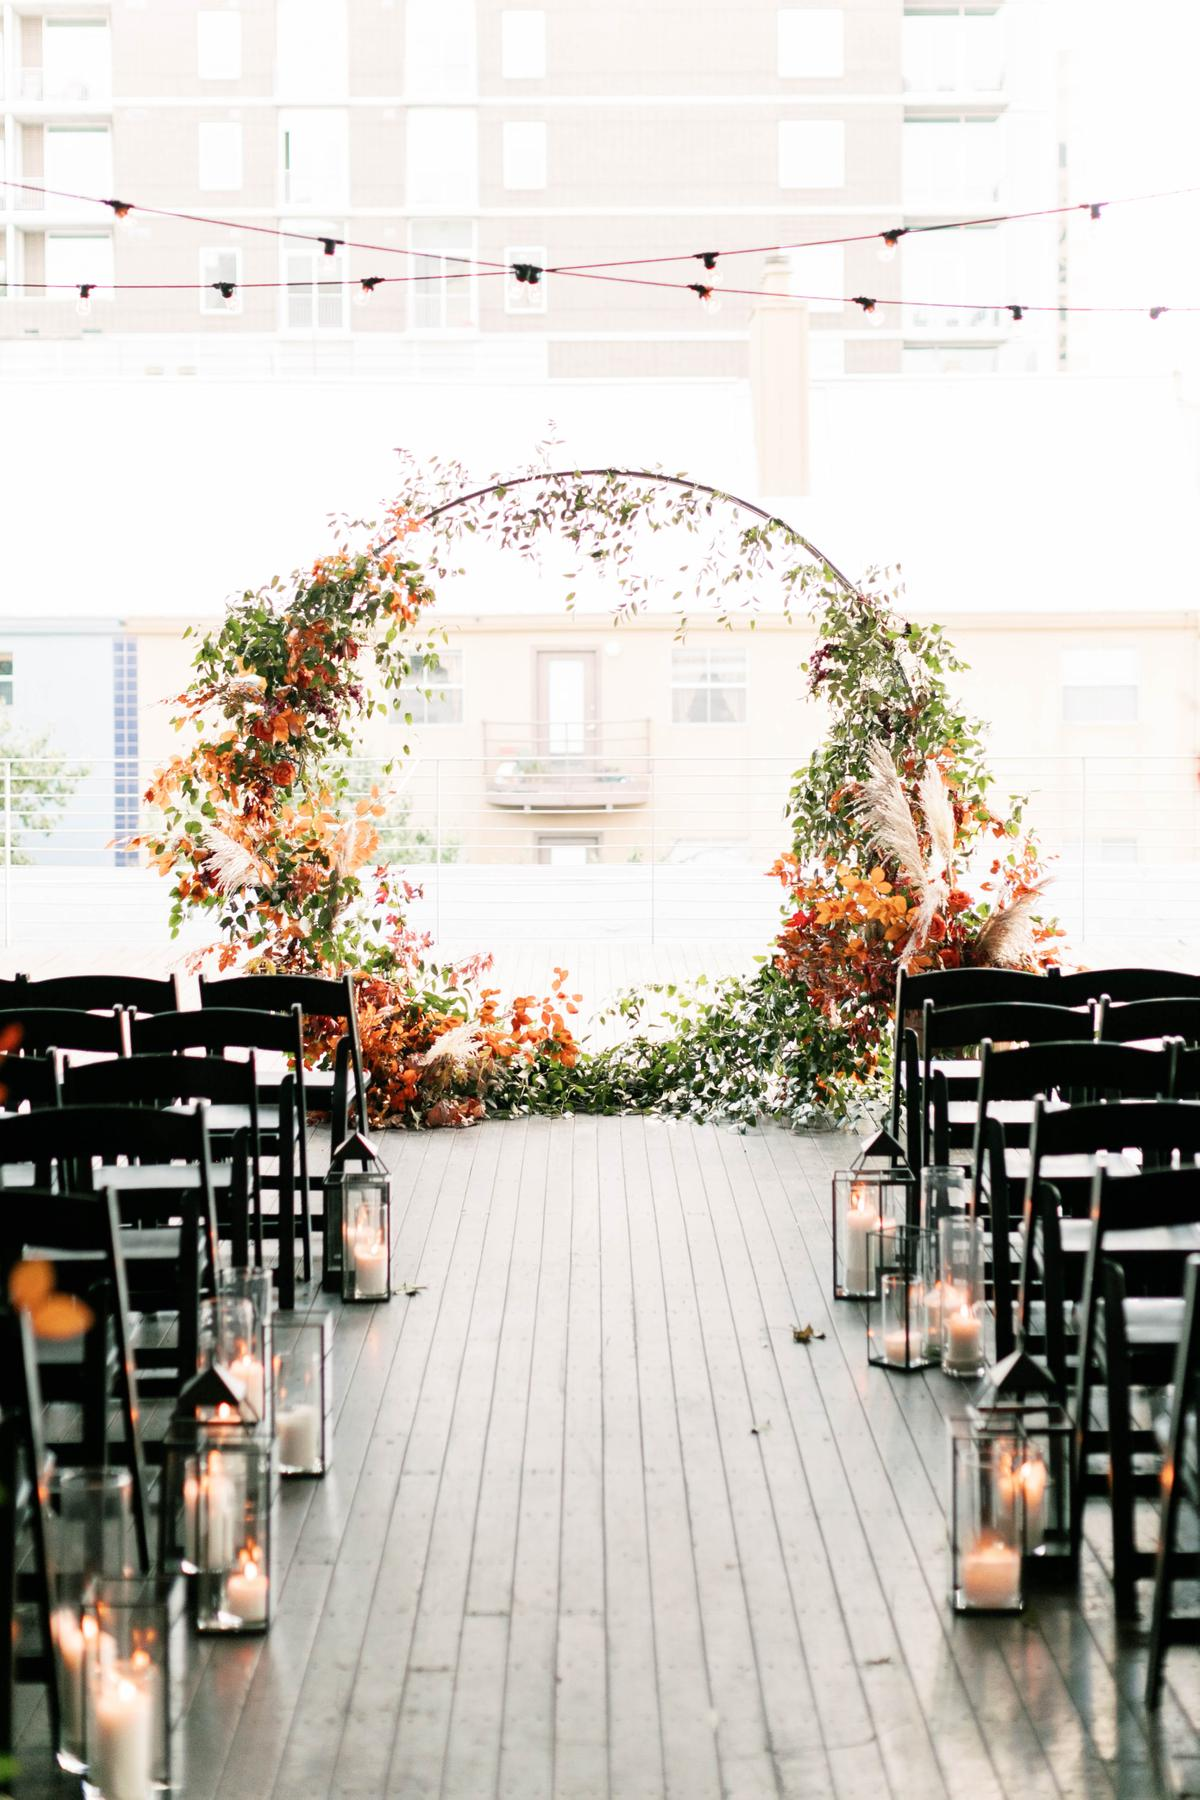 Floral Arrangements and Decor Advice | by Bride & Blossom, NYC's Only  Luxury Wedding Florist -- Wedding Ideas, Tips and Trends for the Modern,  Sophisticated Bride - Part 3